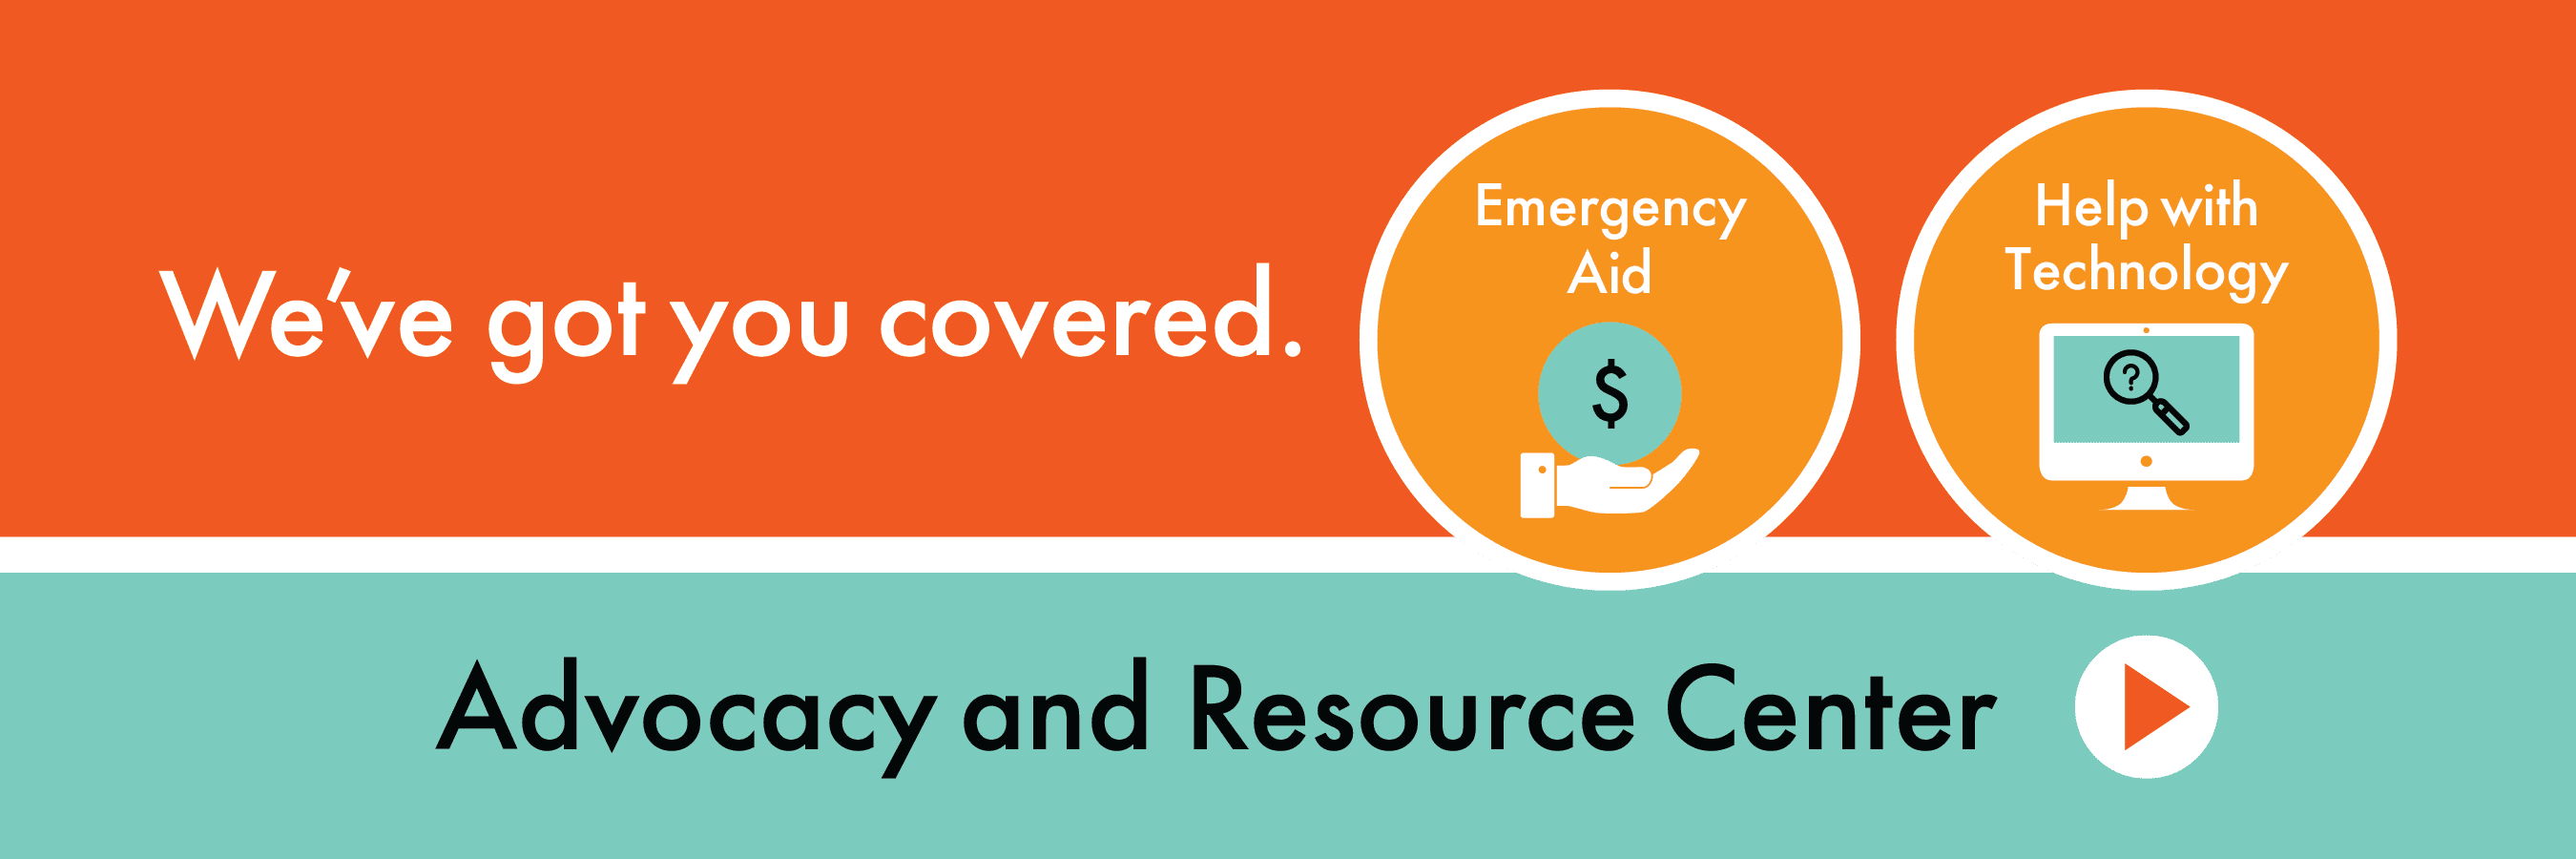 We've got you covered. Emergency Aid, Help with Technology. Advocacy and Resource Center